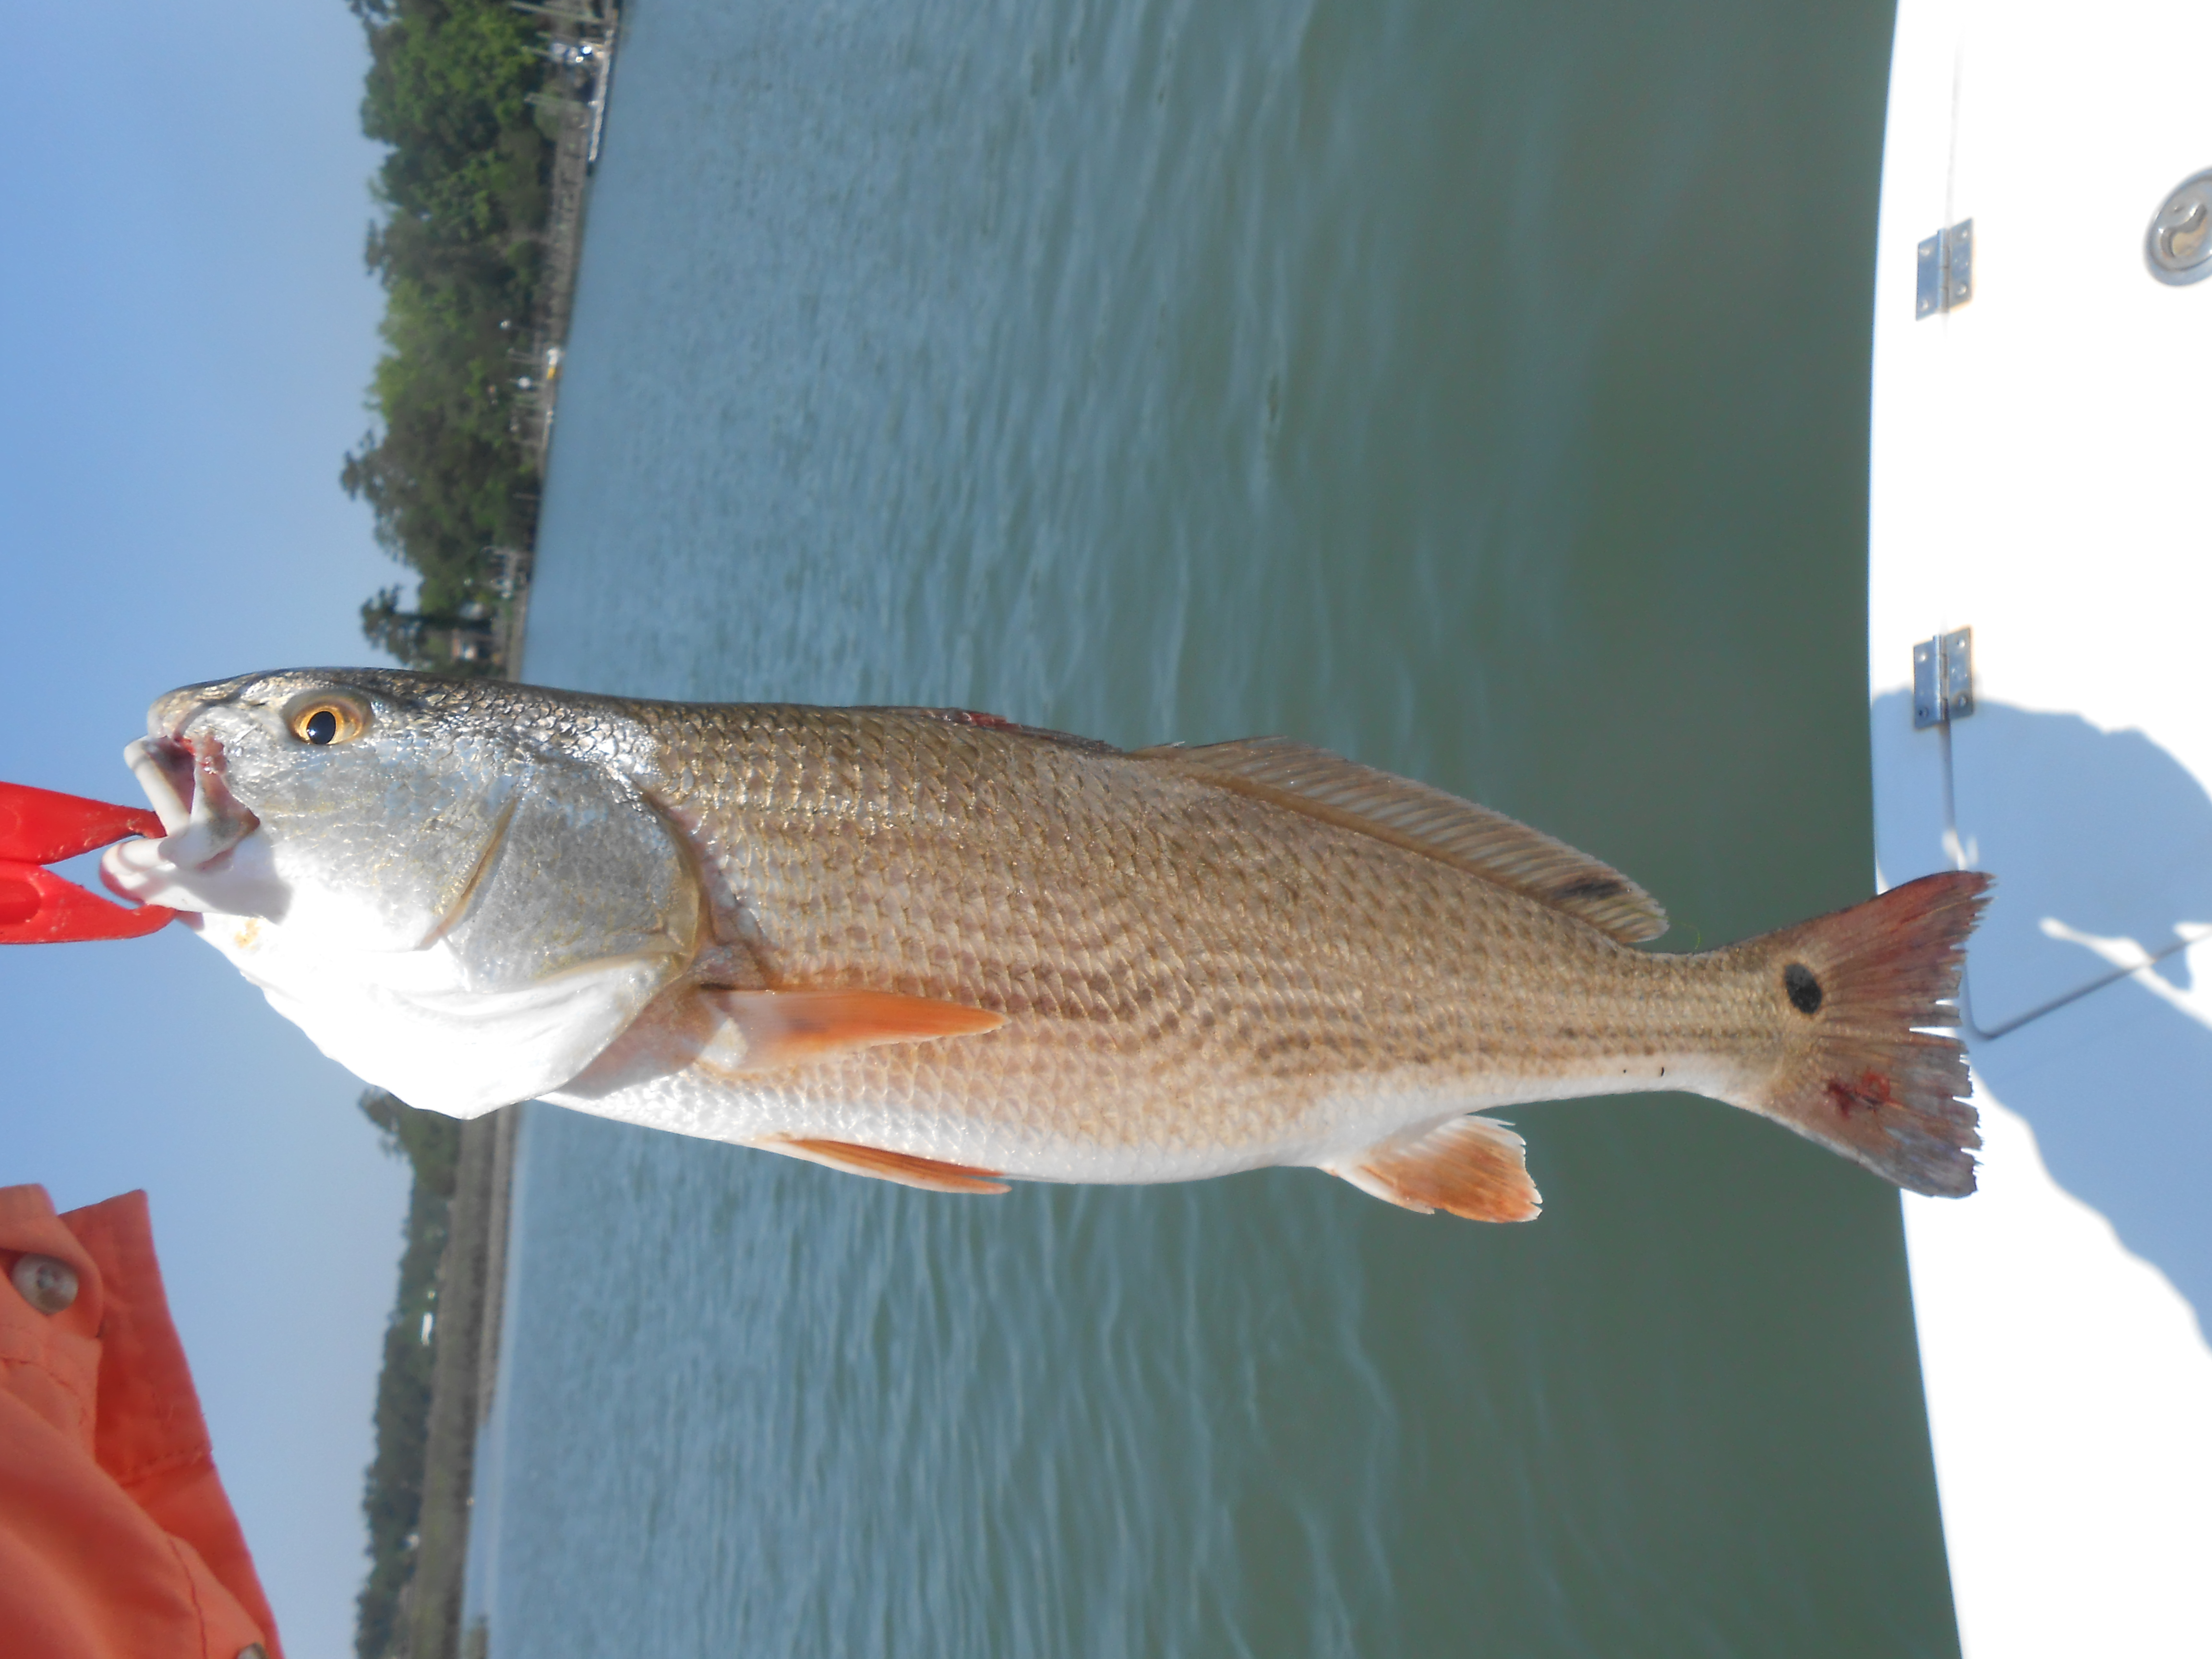 Red drum fishing charters profishnc charters for Red drum fishing